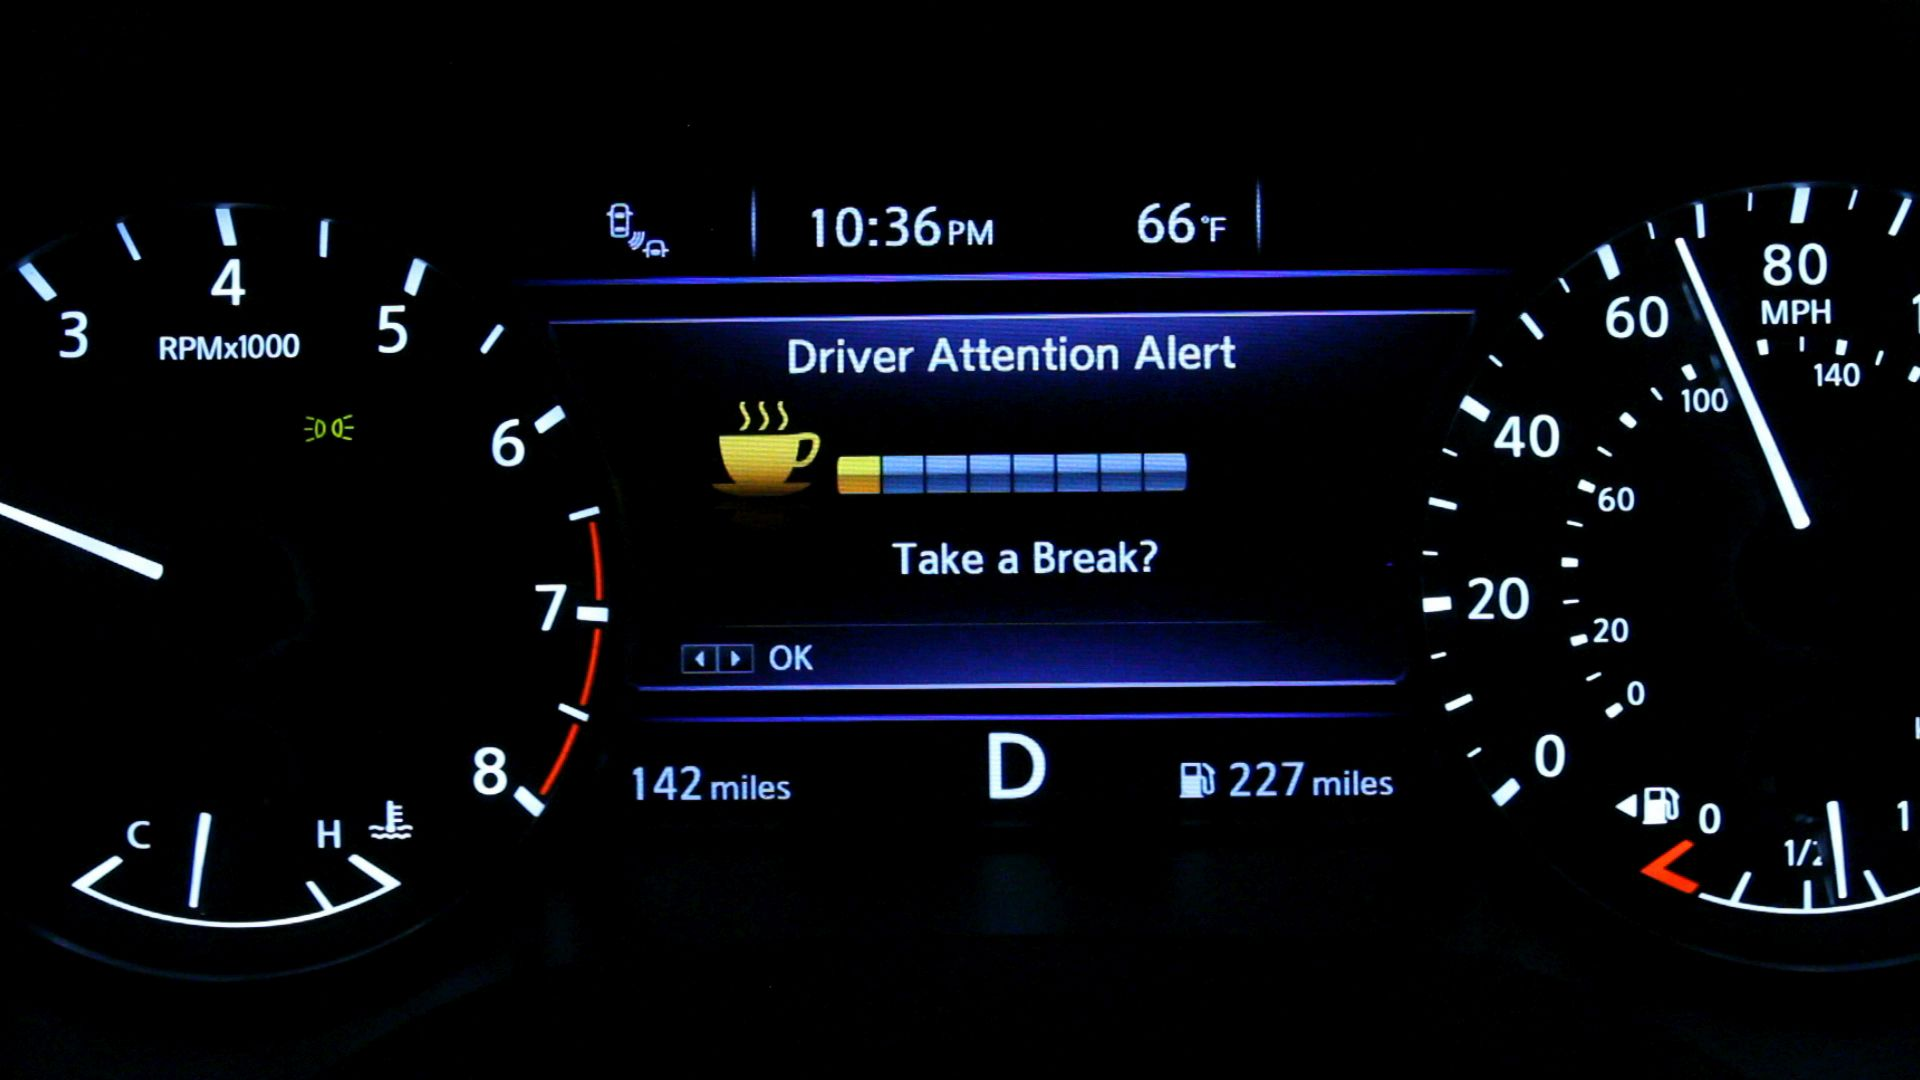 Nissan Driver Attention Alert System